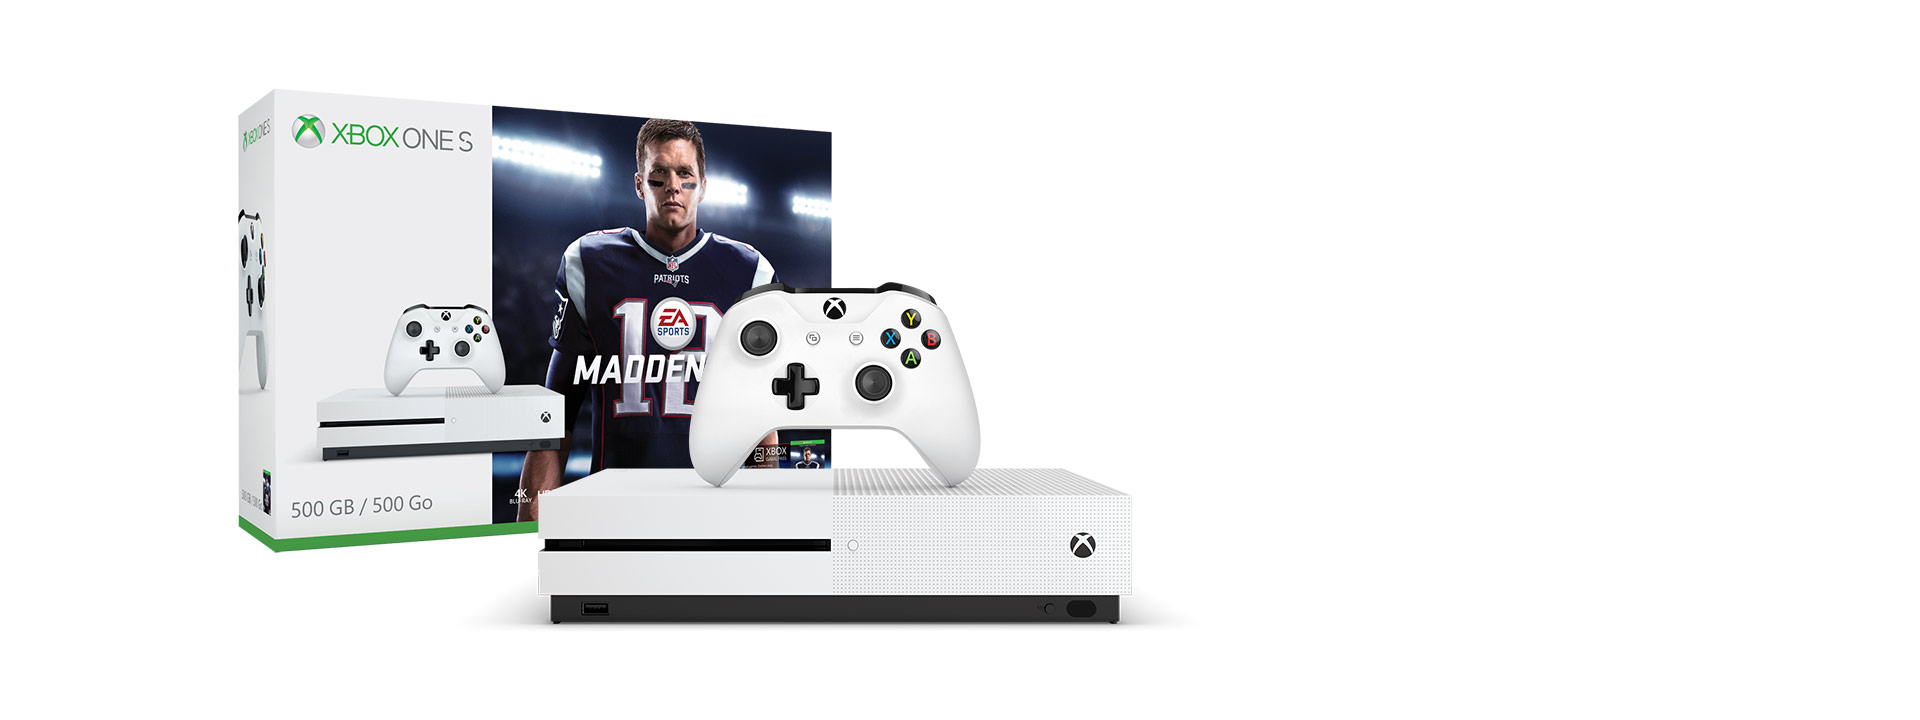 Xbox One S Madden 18 (500 GB)